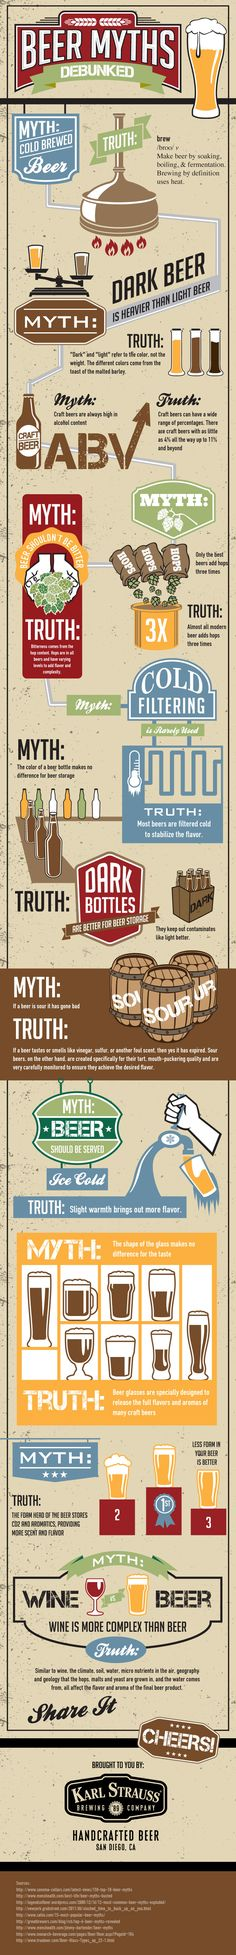 Beer myths debunked #CraftBeer